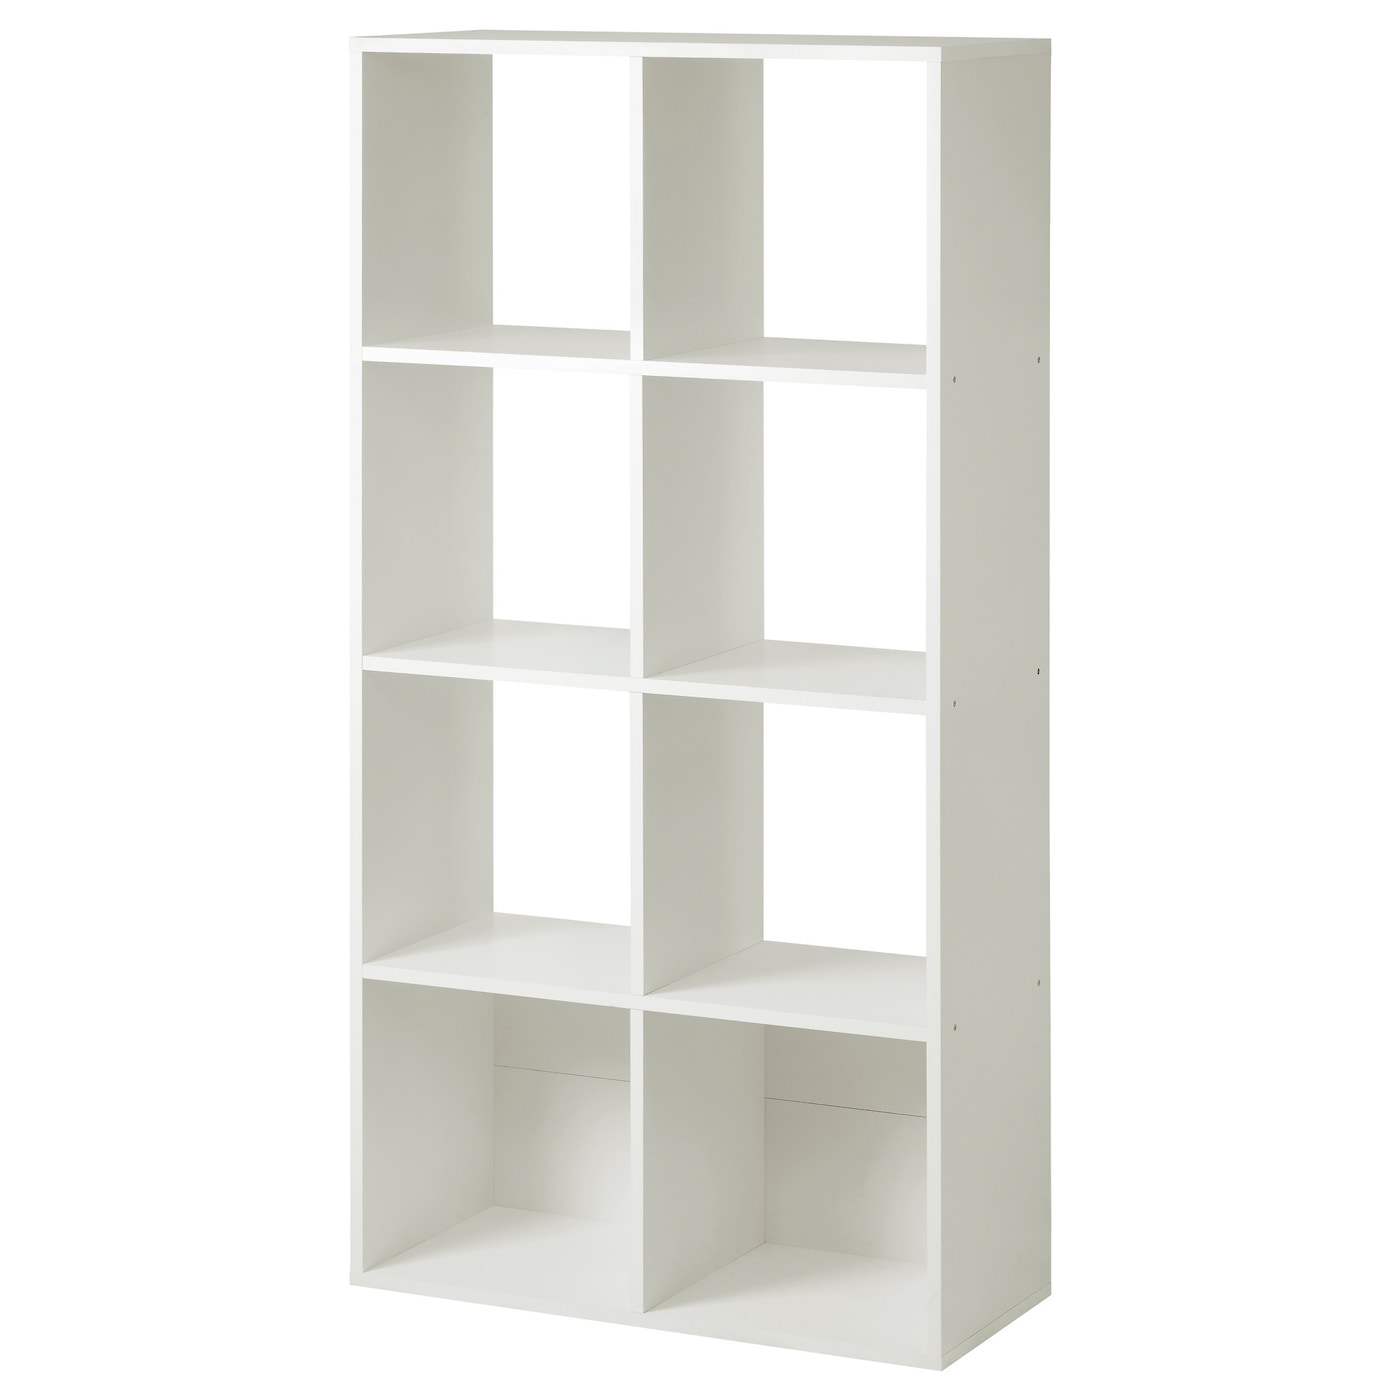 Ikea BitrÄde Shelving Unit